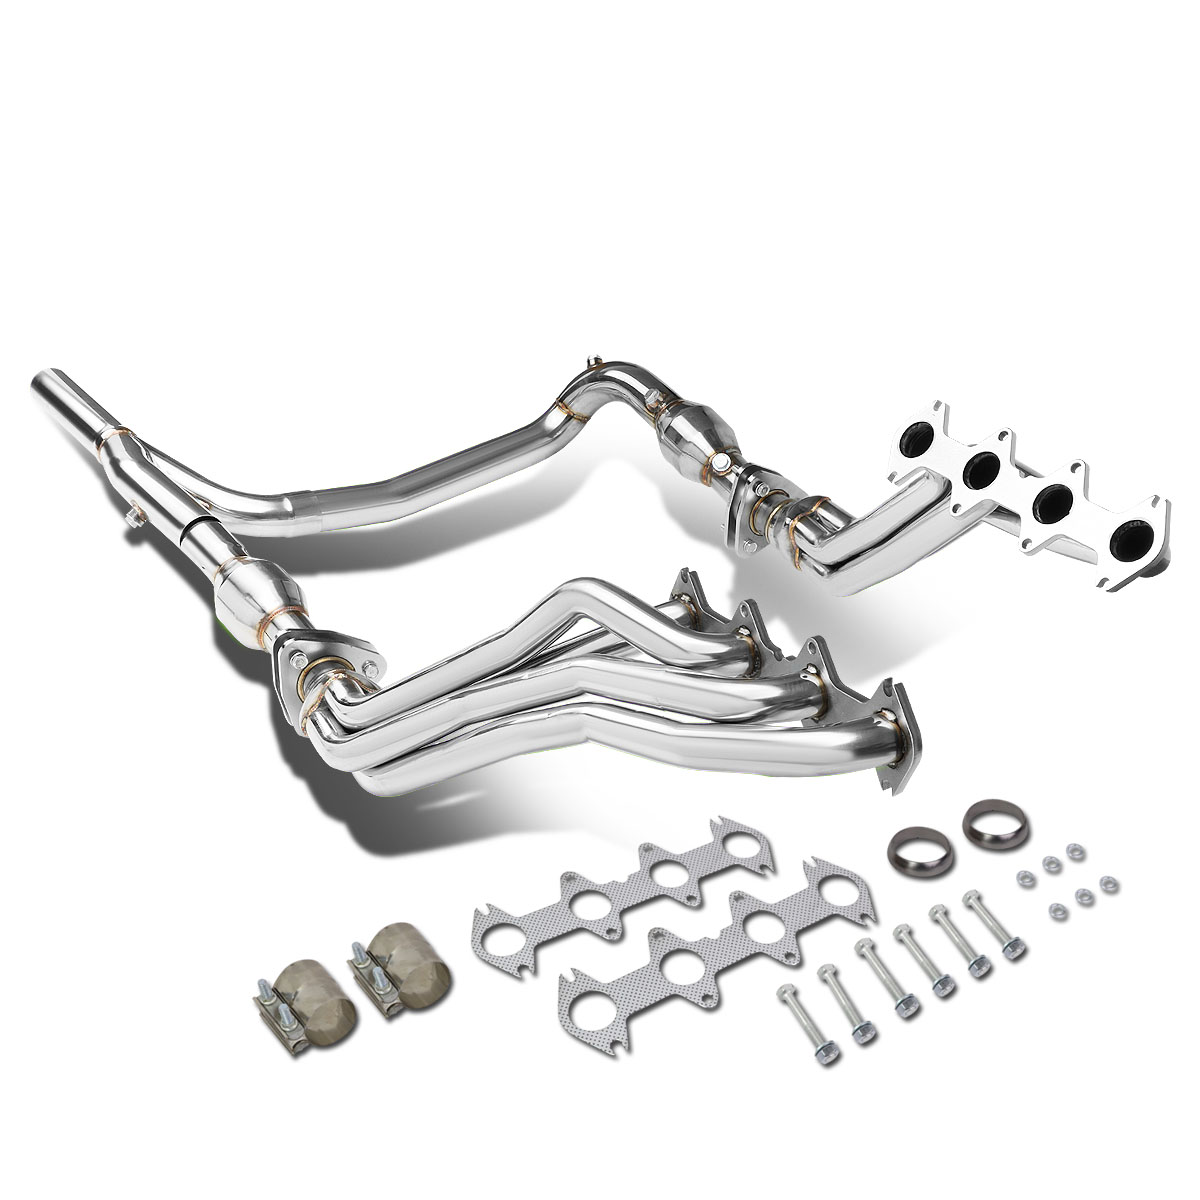 https www walmart com ip for 2004 to 2010 ford f150 5 4l v8 4wd long tube 4 2 1 exhaust header manifolds gaskets y pipe 05 06 07 08 09 559615346